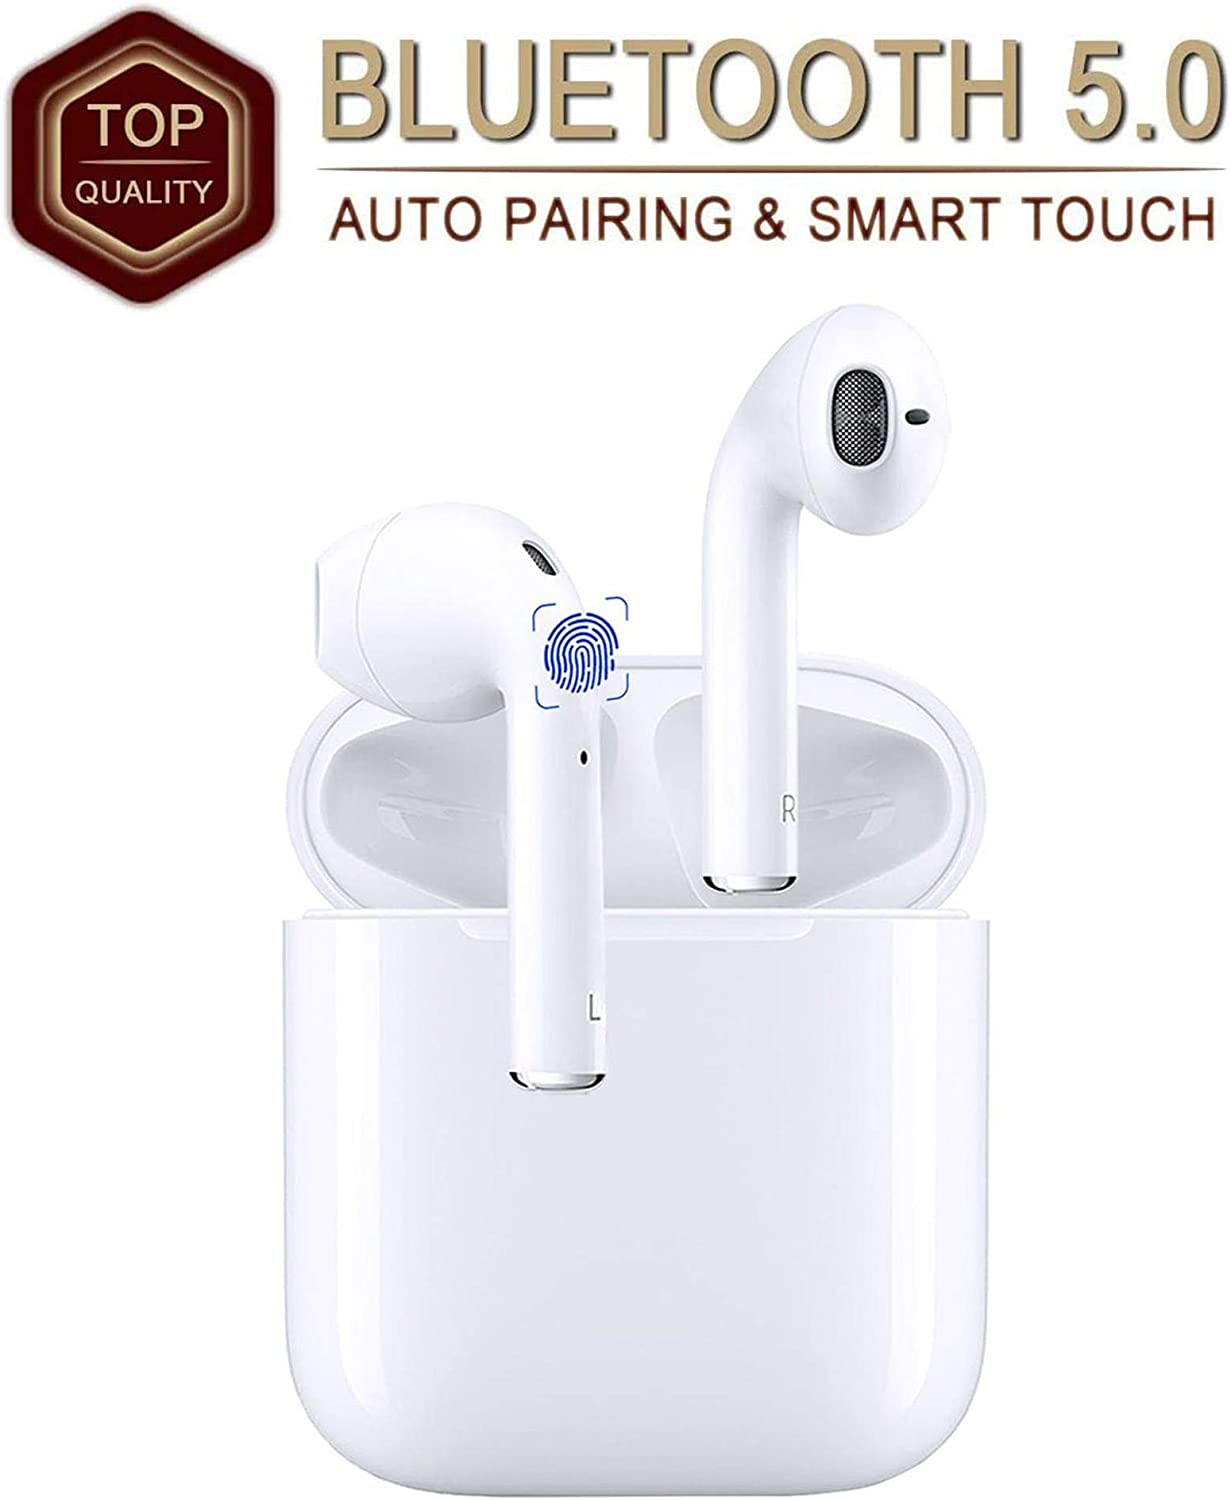 Wireless Earbuds Bluetooth 5.0 Headphones with【24Hrs Charging Case】 IPX5 Waterproof, 3D Stereo Headsets in-Ear Ear Buds Built-in Mic, Pop-ups Auto Pairing for Airpods/Android/iPhone/Samsung